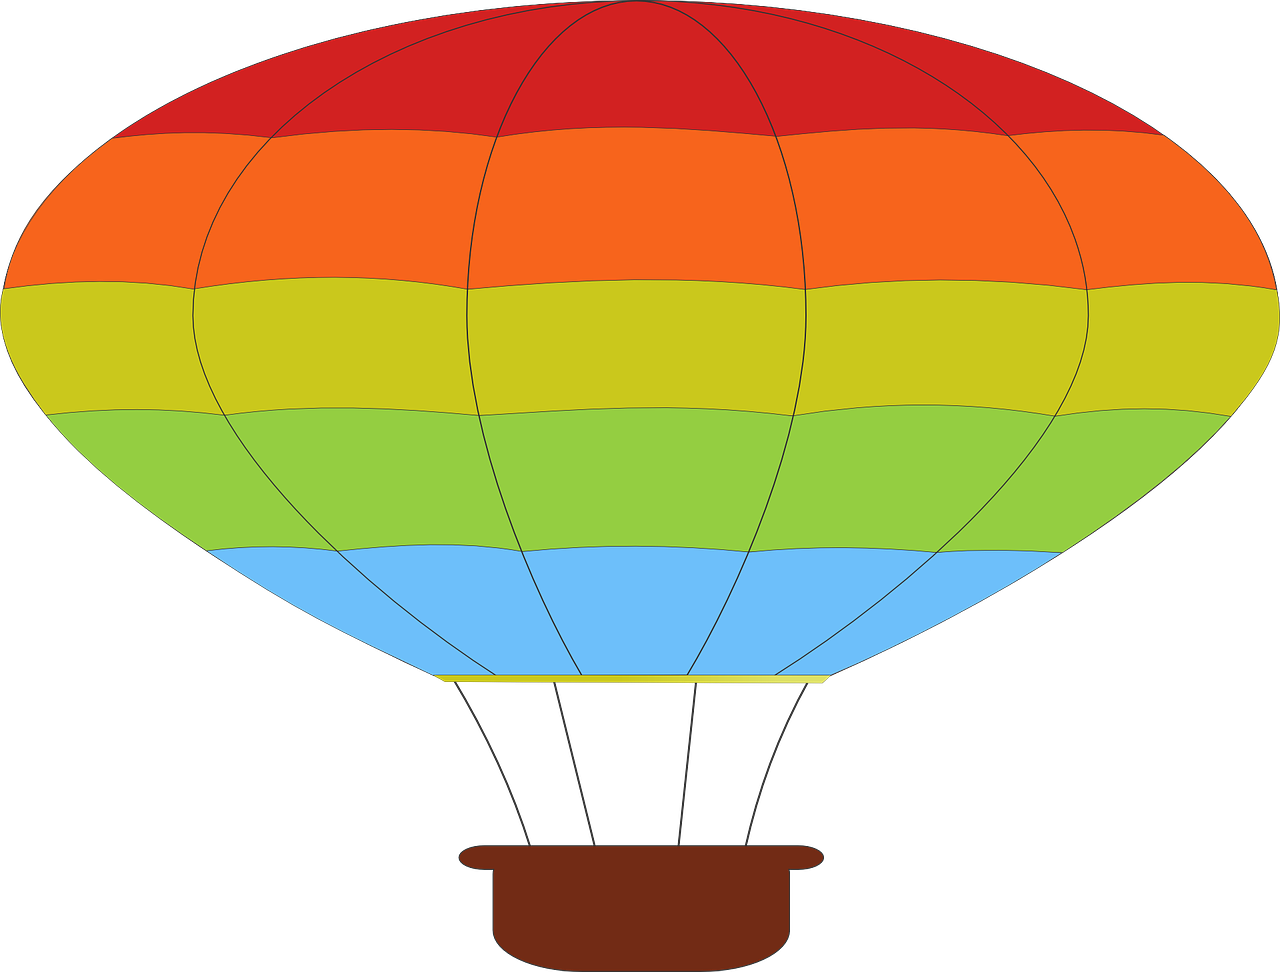 Balloon illustrating benefits